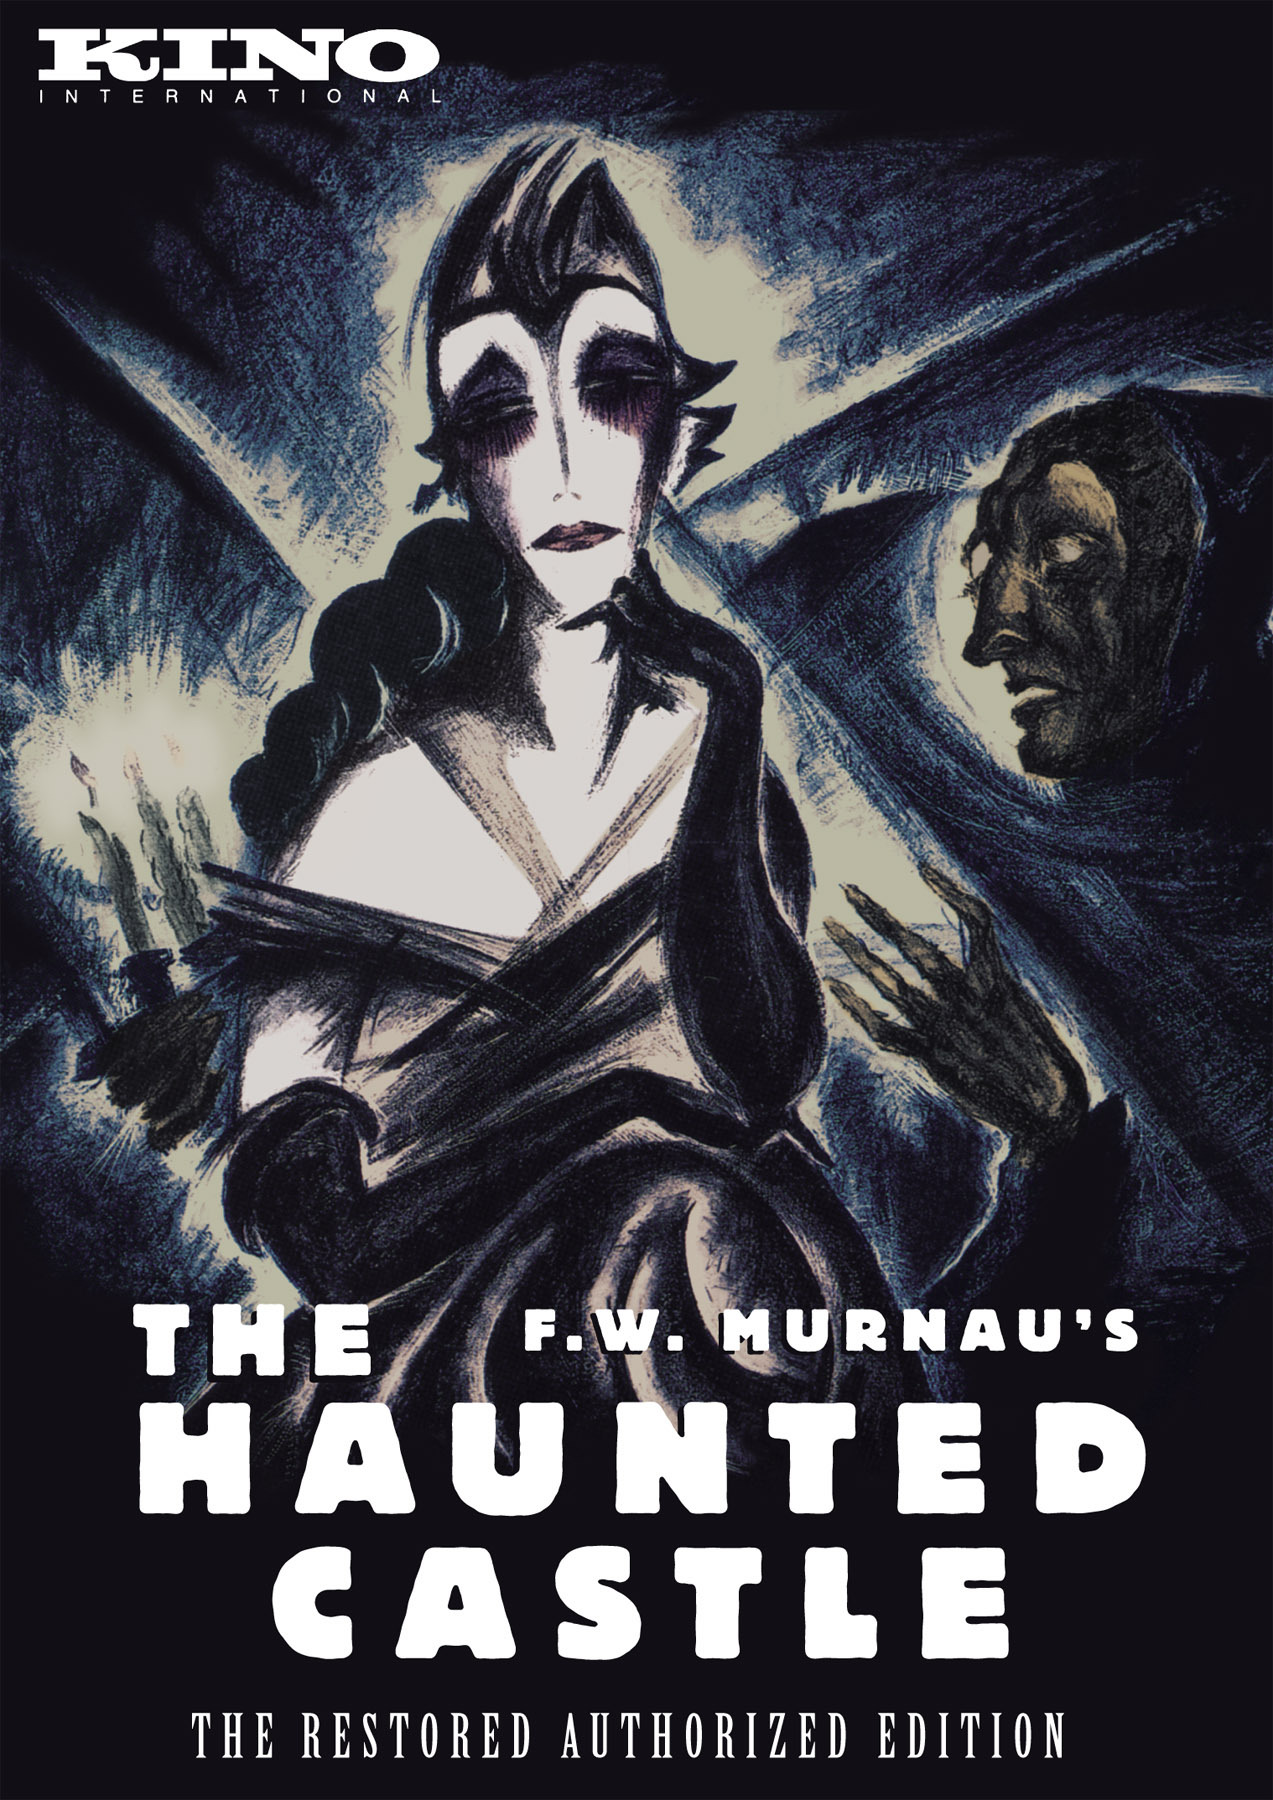 Poster for The Haunted Castle